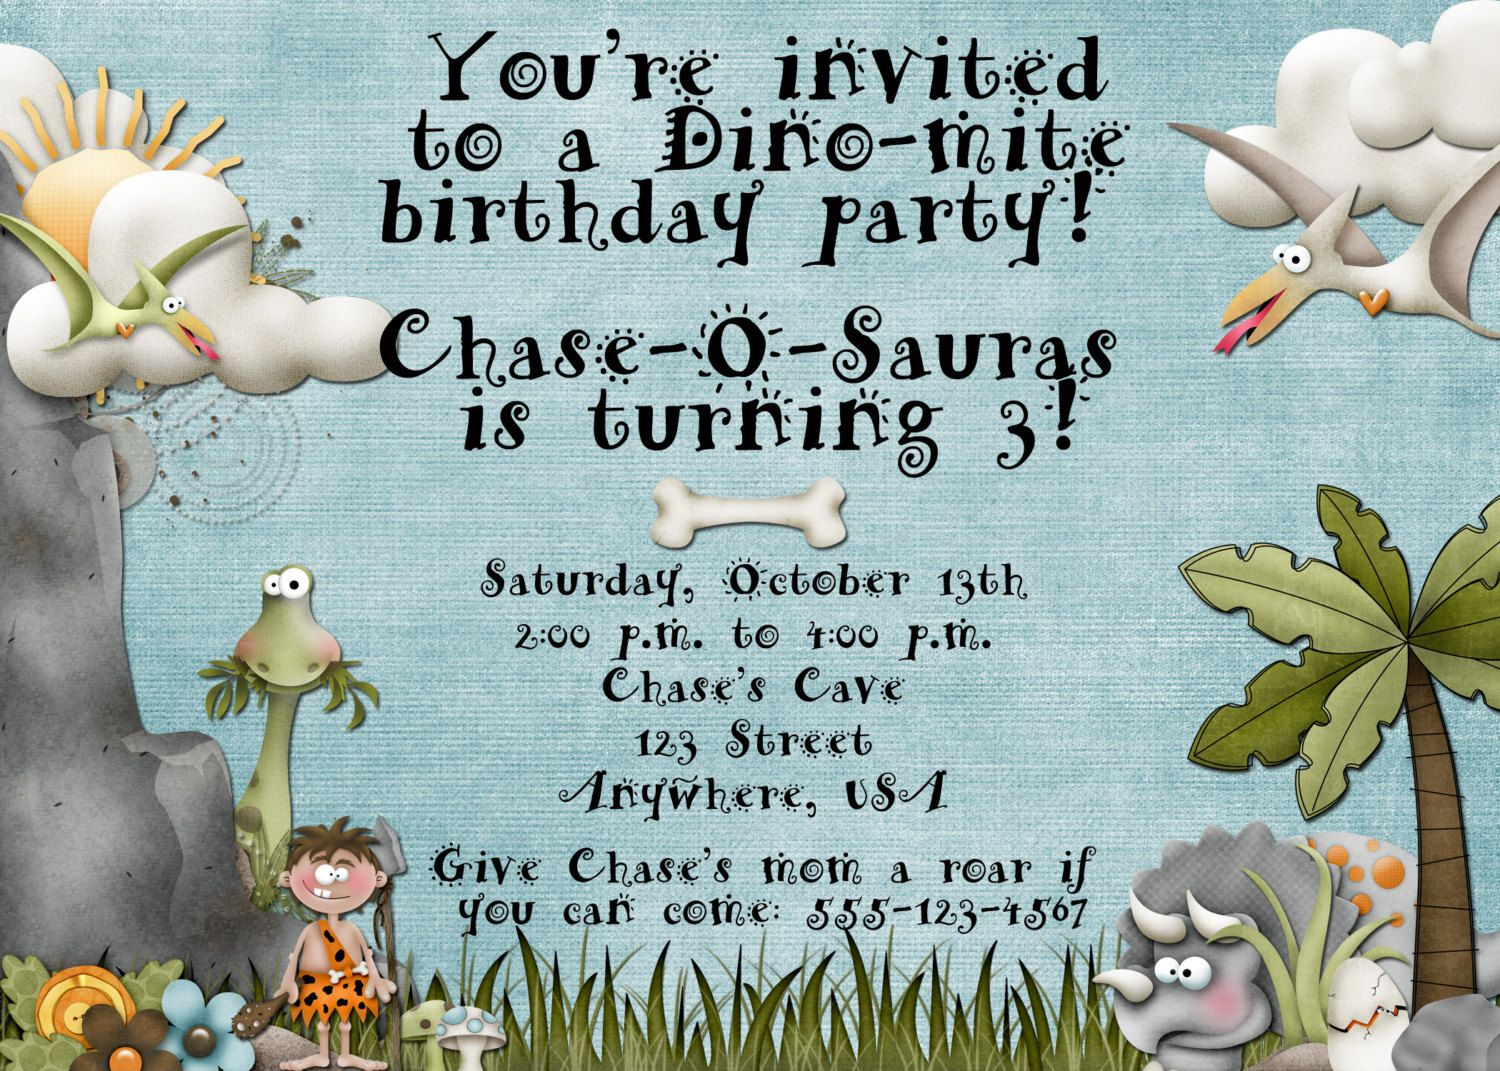 Dinosaur Caveman Birthday Party Invitation | Party invitations ...